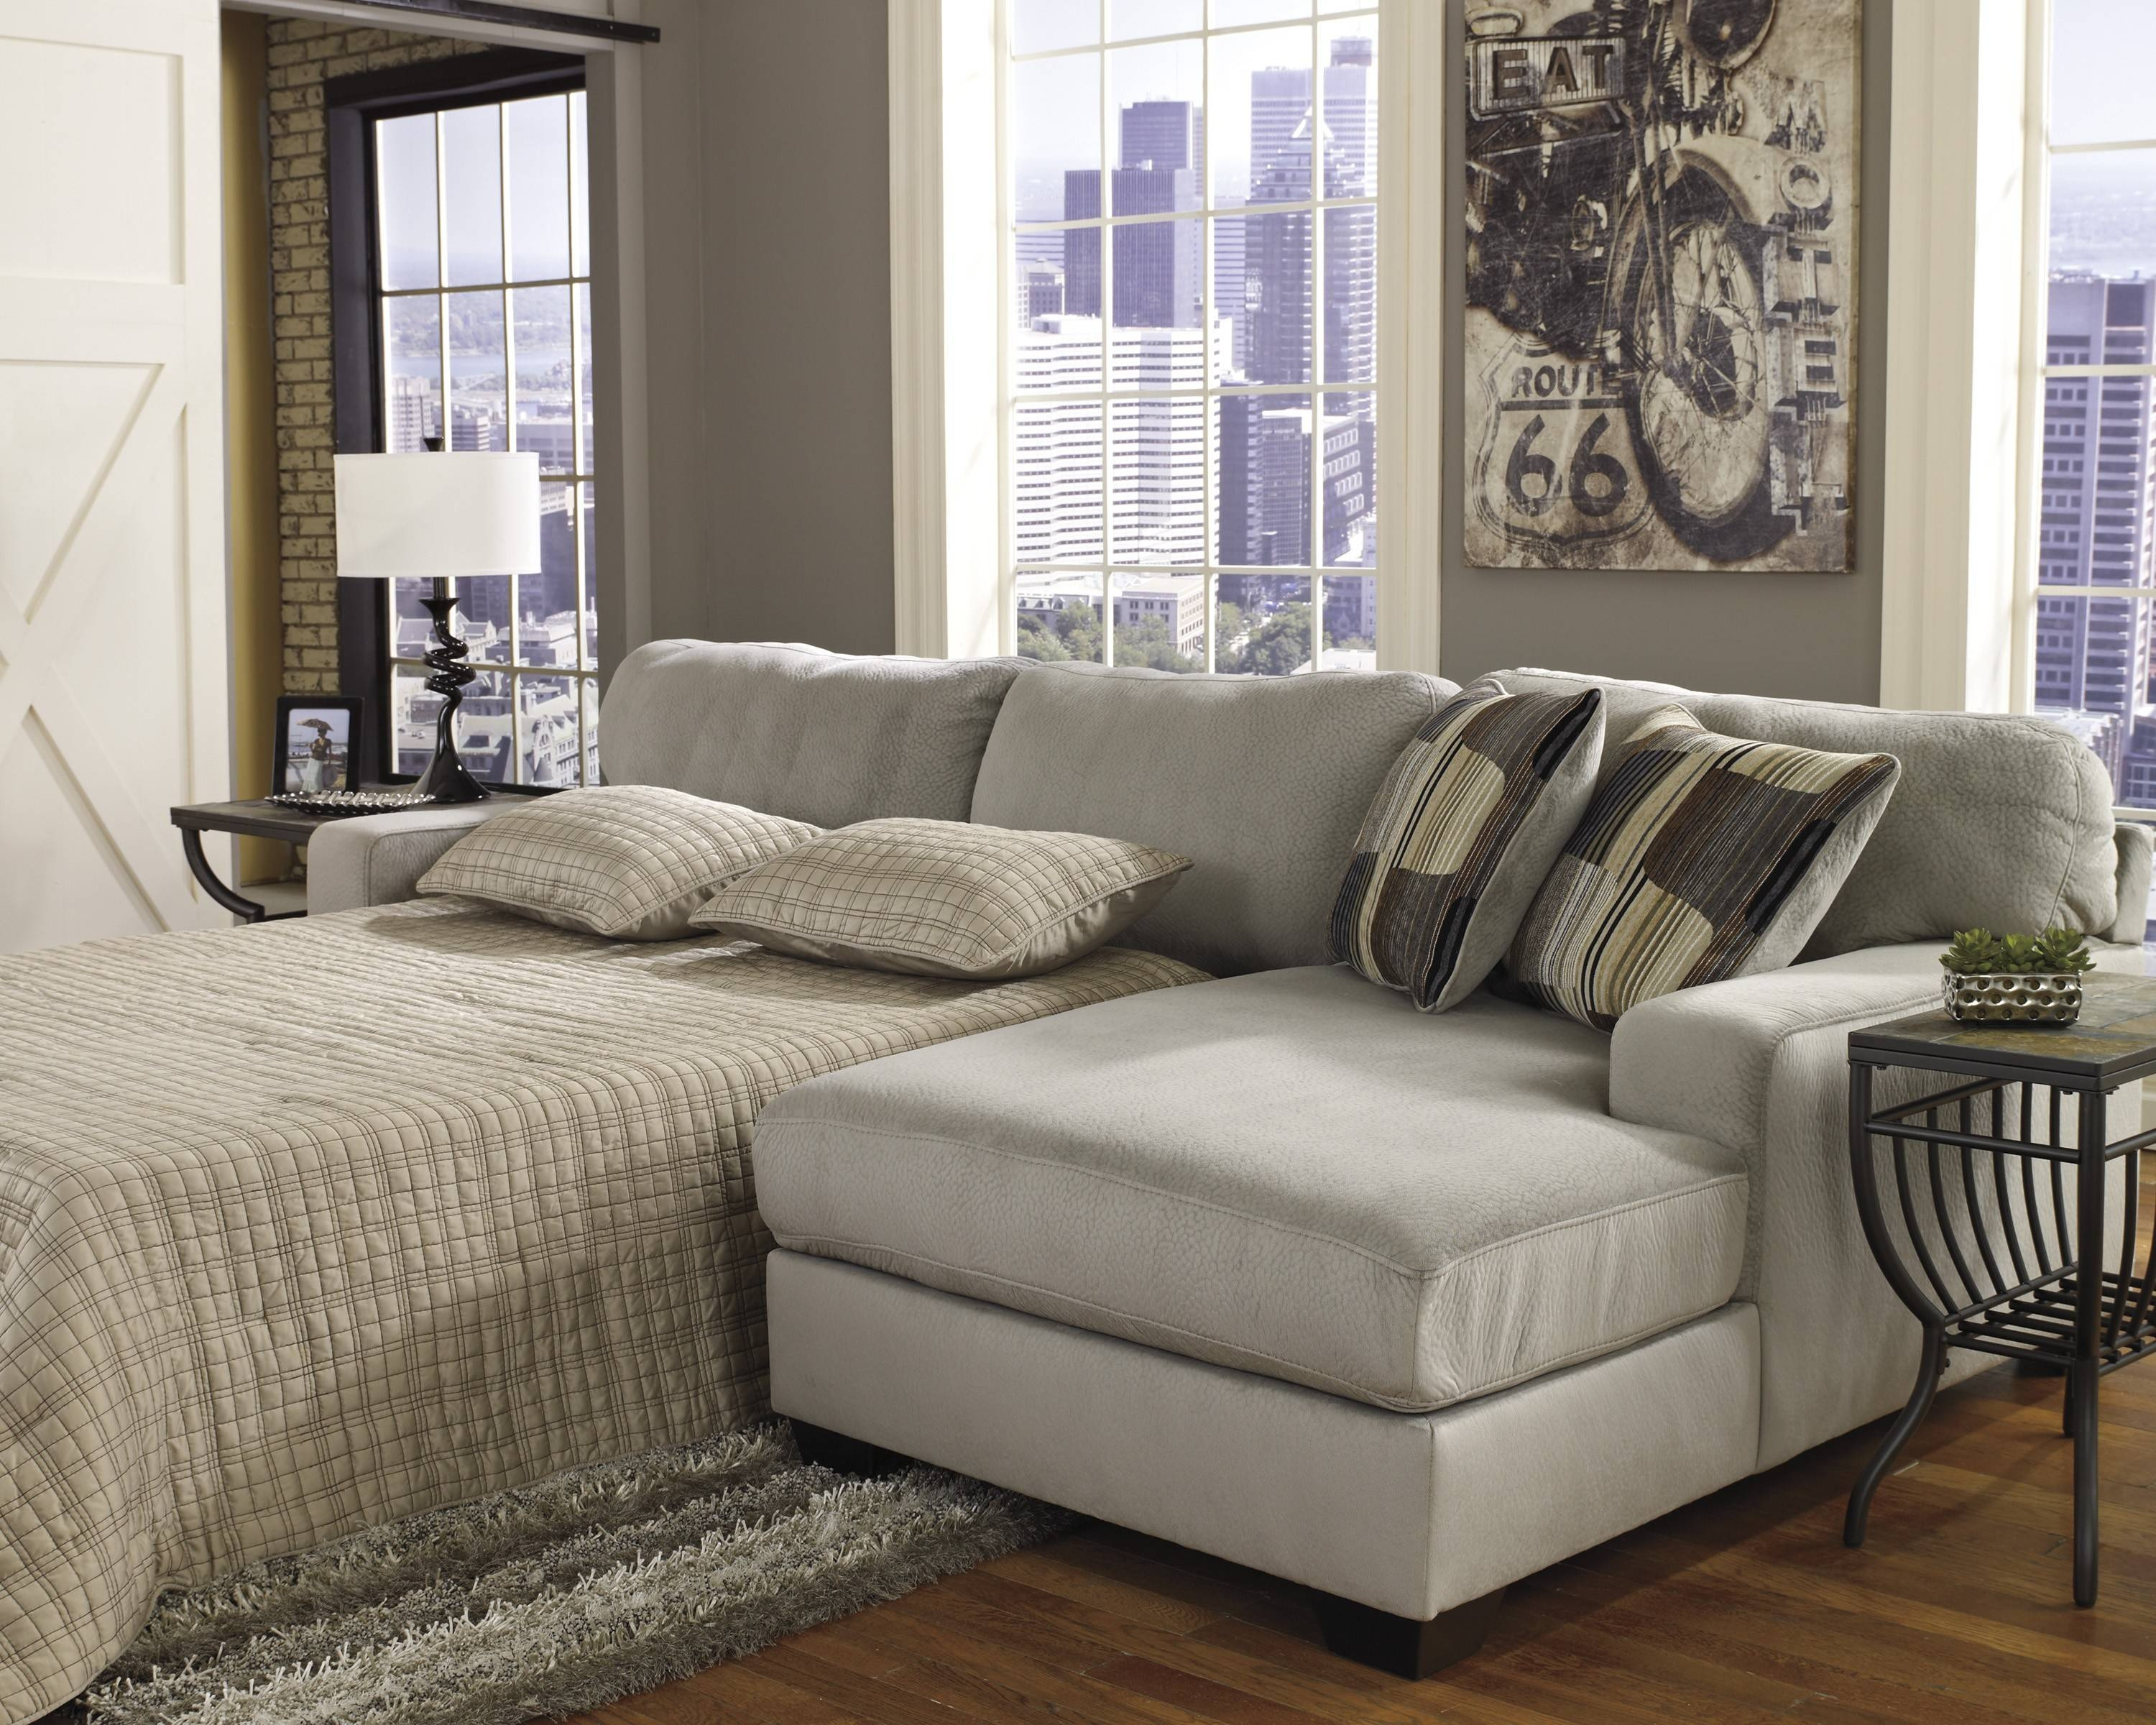 Astounding Small Sectional Sleeper Sofa Chaise 99 In Large within Large Comfortable Sectional Sofas (Image 1 of 25)